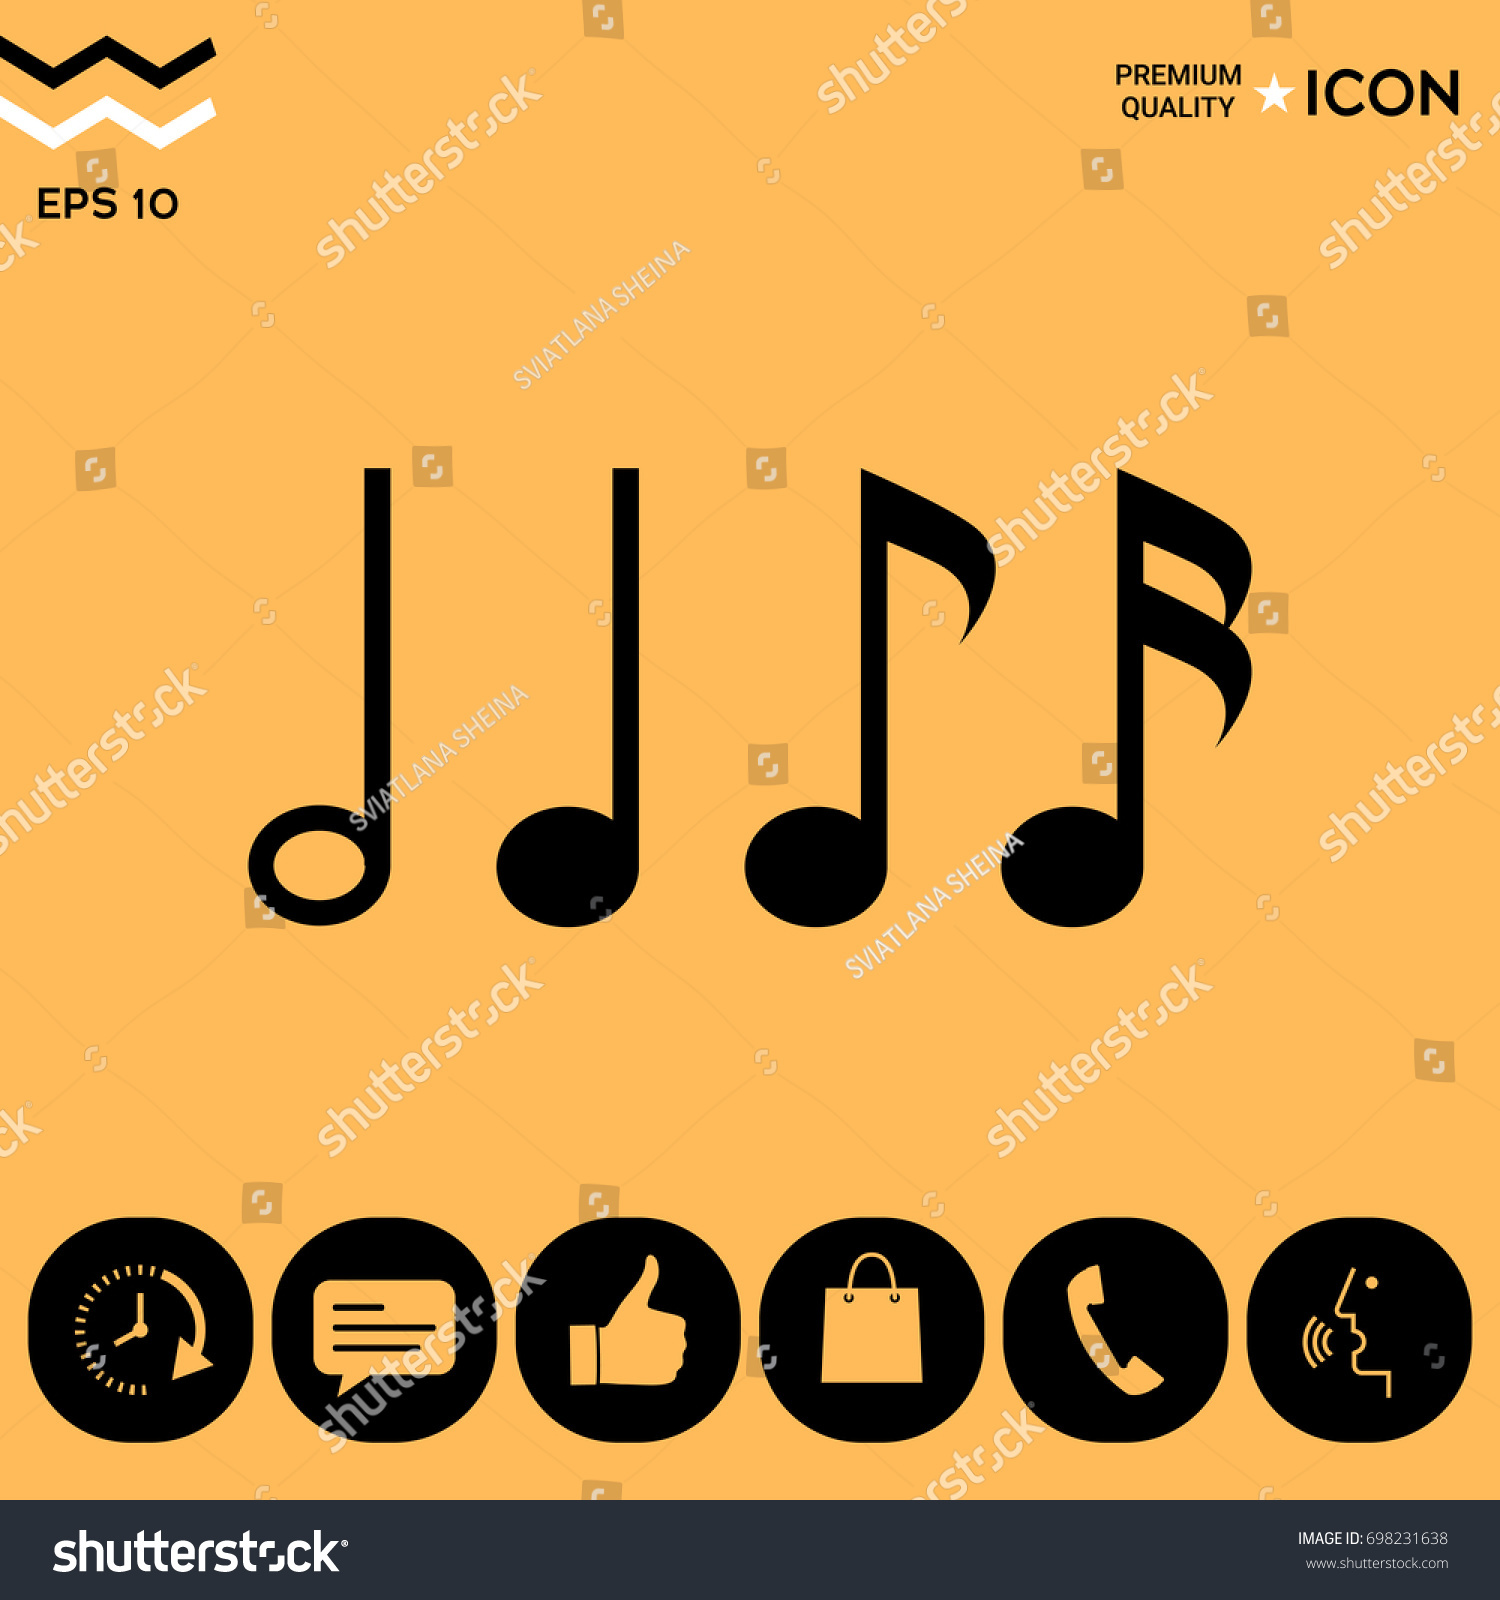 Symbol music notes sixteenth note eighth stock vector 698231638 symbol music notes sixteenth note eighth stock vector 698231638 shutterstock buycottarizona Image collections